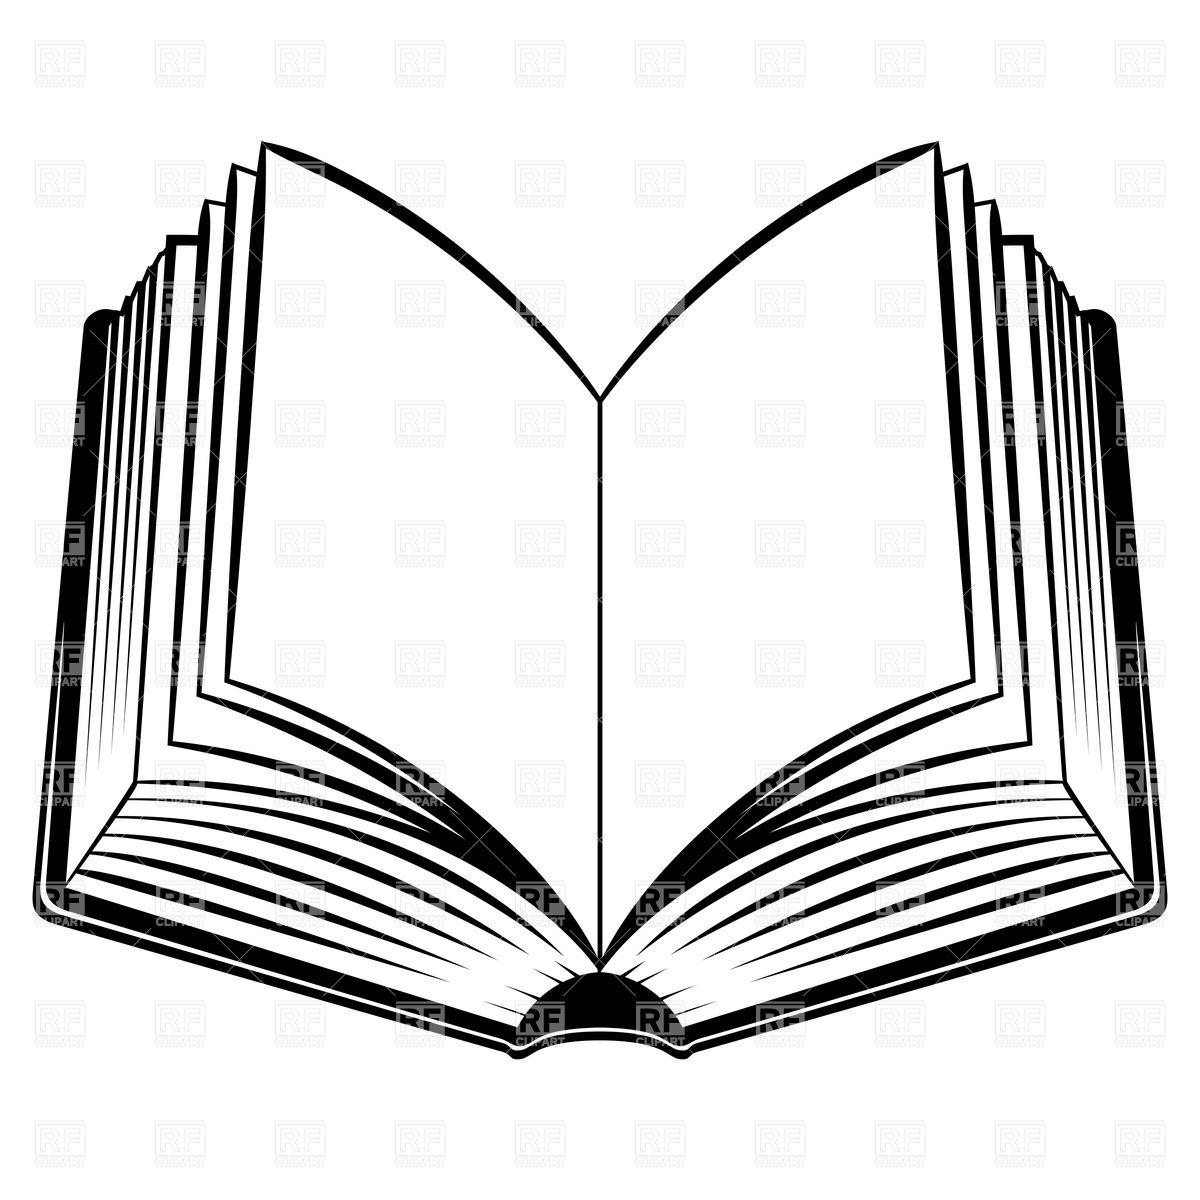 Line drawing free at. Books clipart simple